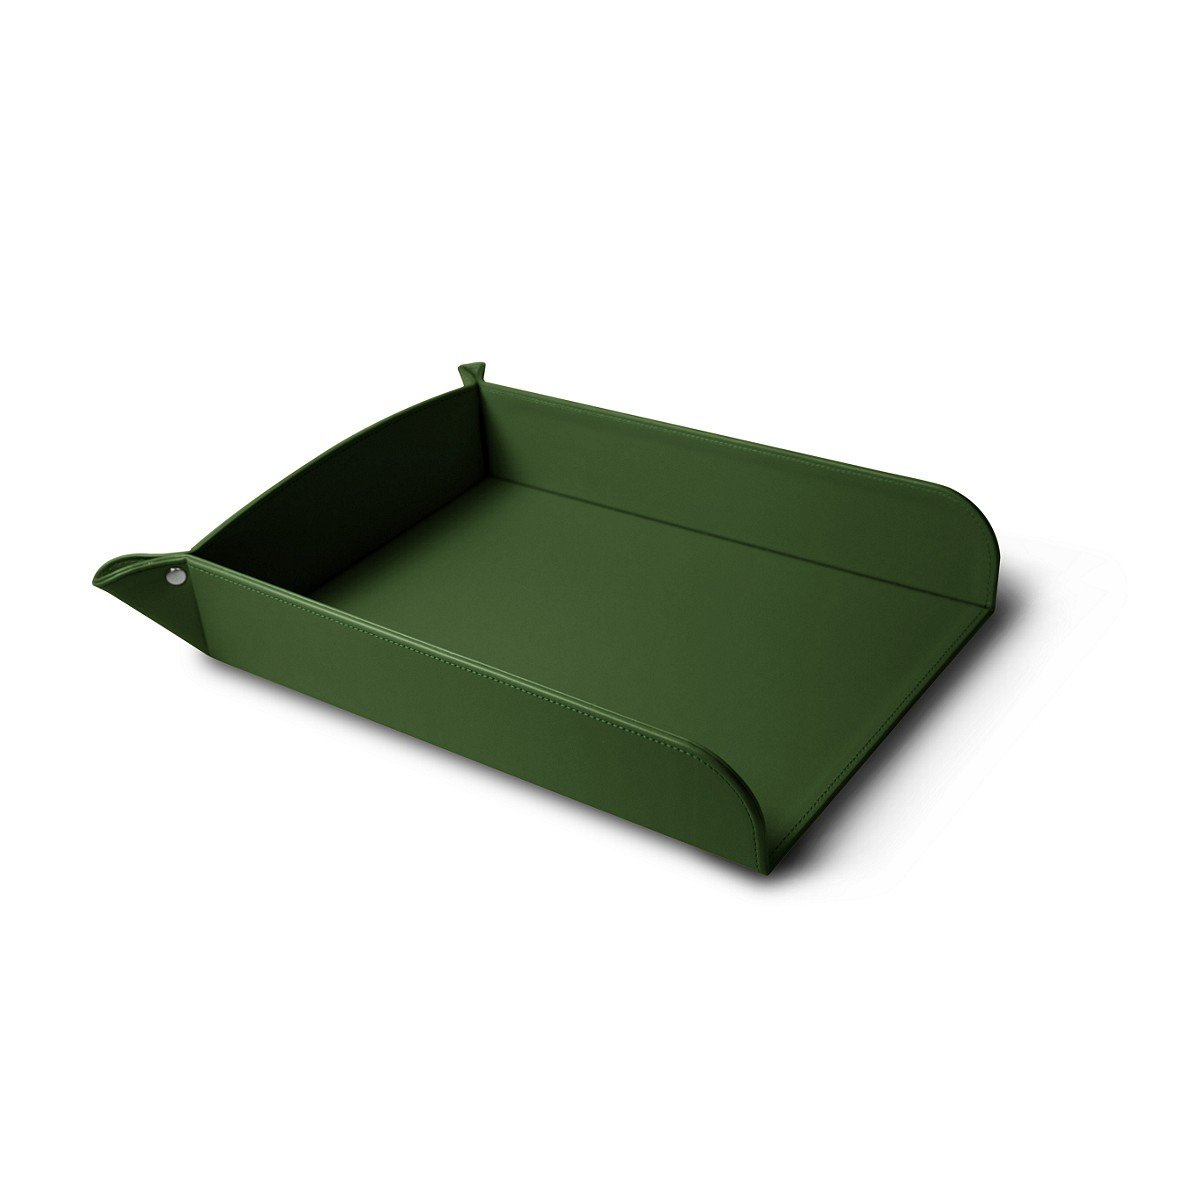 Lucrin - A4 Paper Tray - Light Green - Smooth Leather